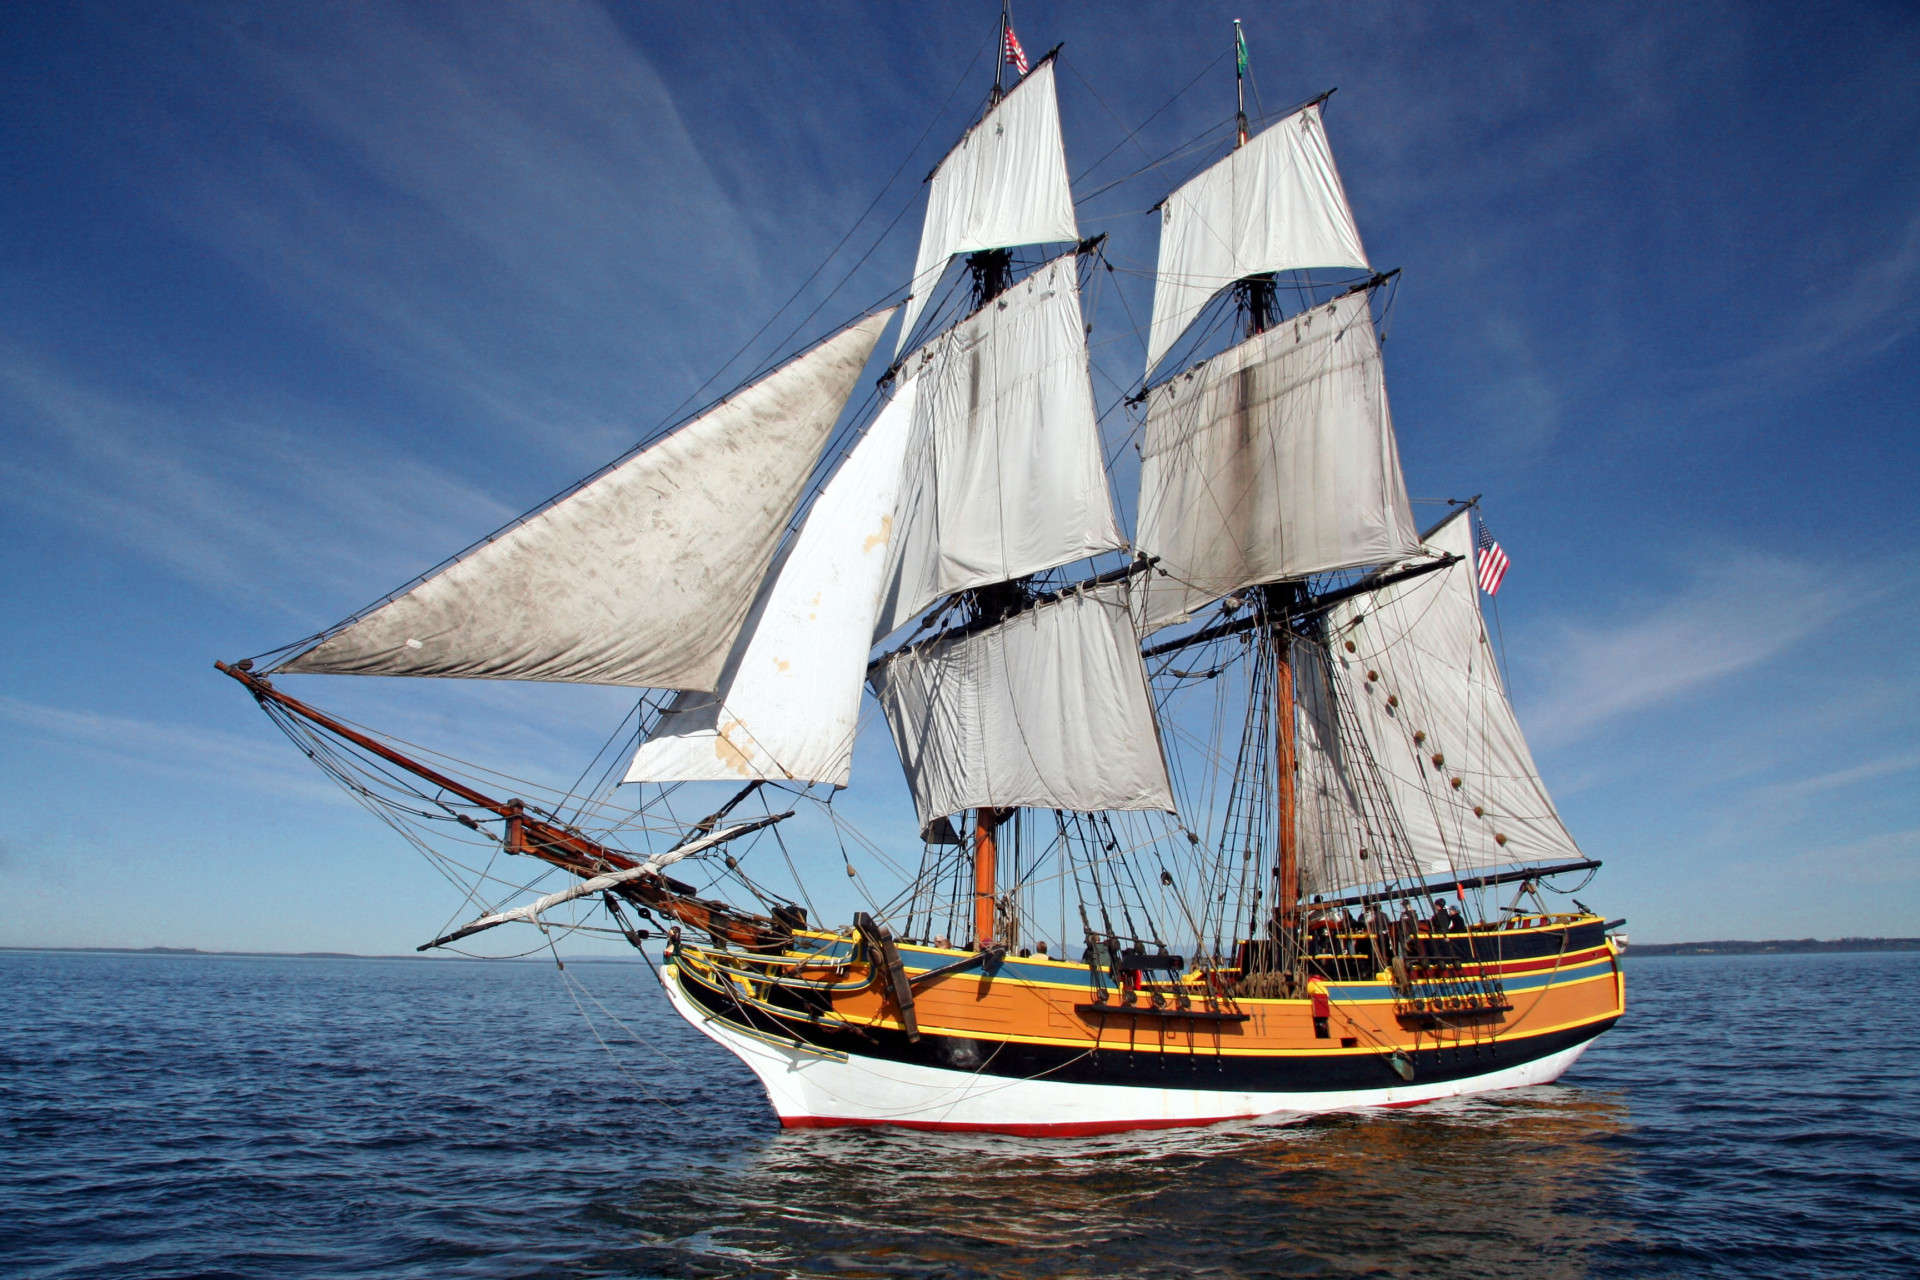 Pirates of the Caribbean Ship Tours: First Day | Antioch | Funcheap